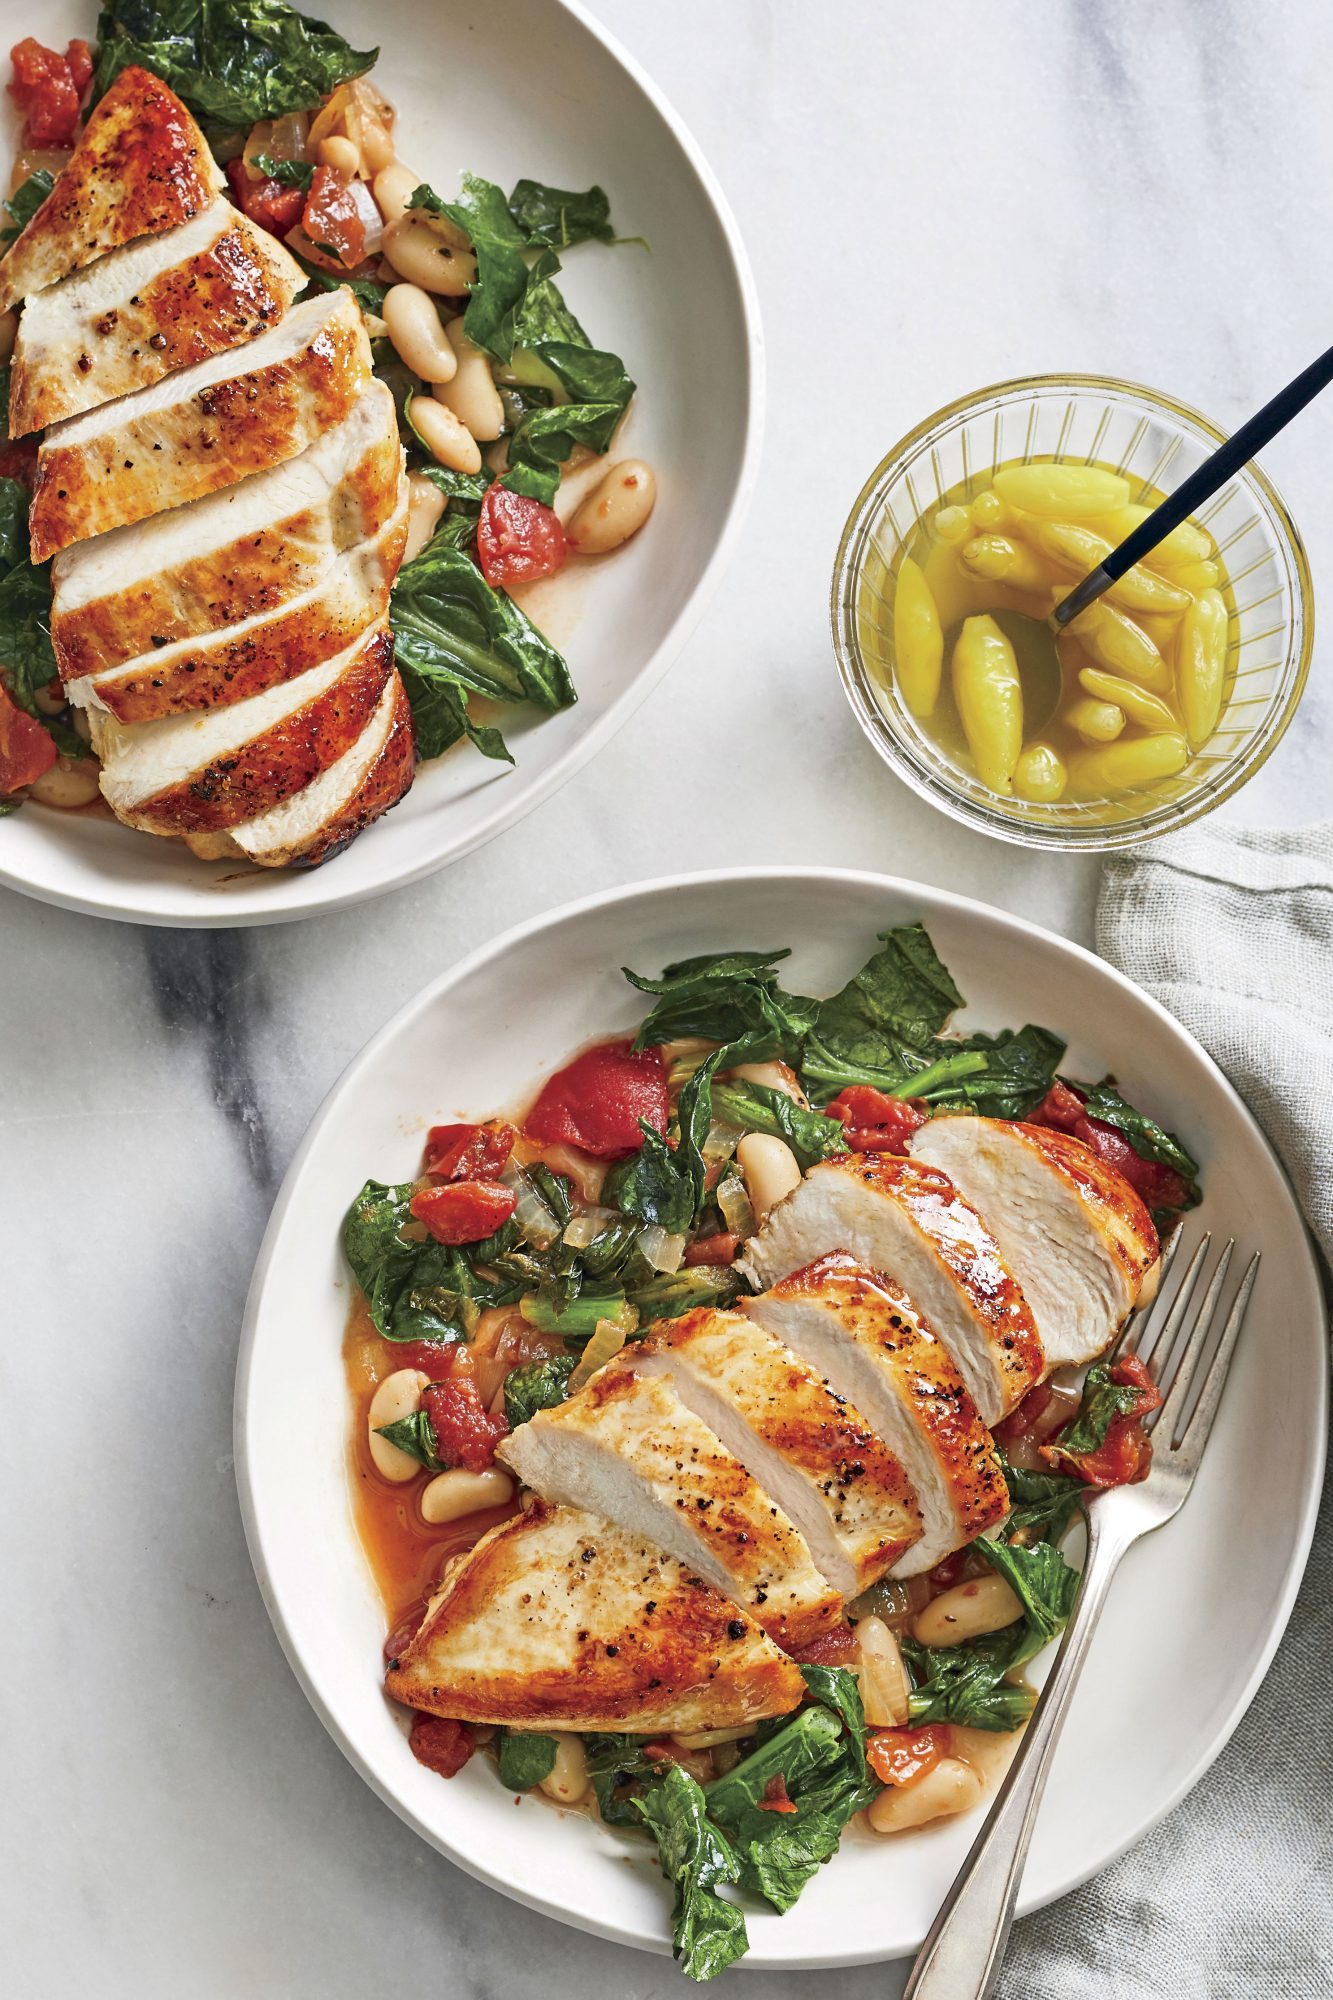 Skillet Chicken with Beans and Greens